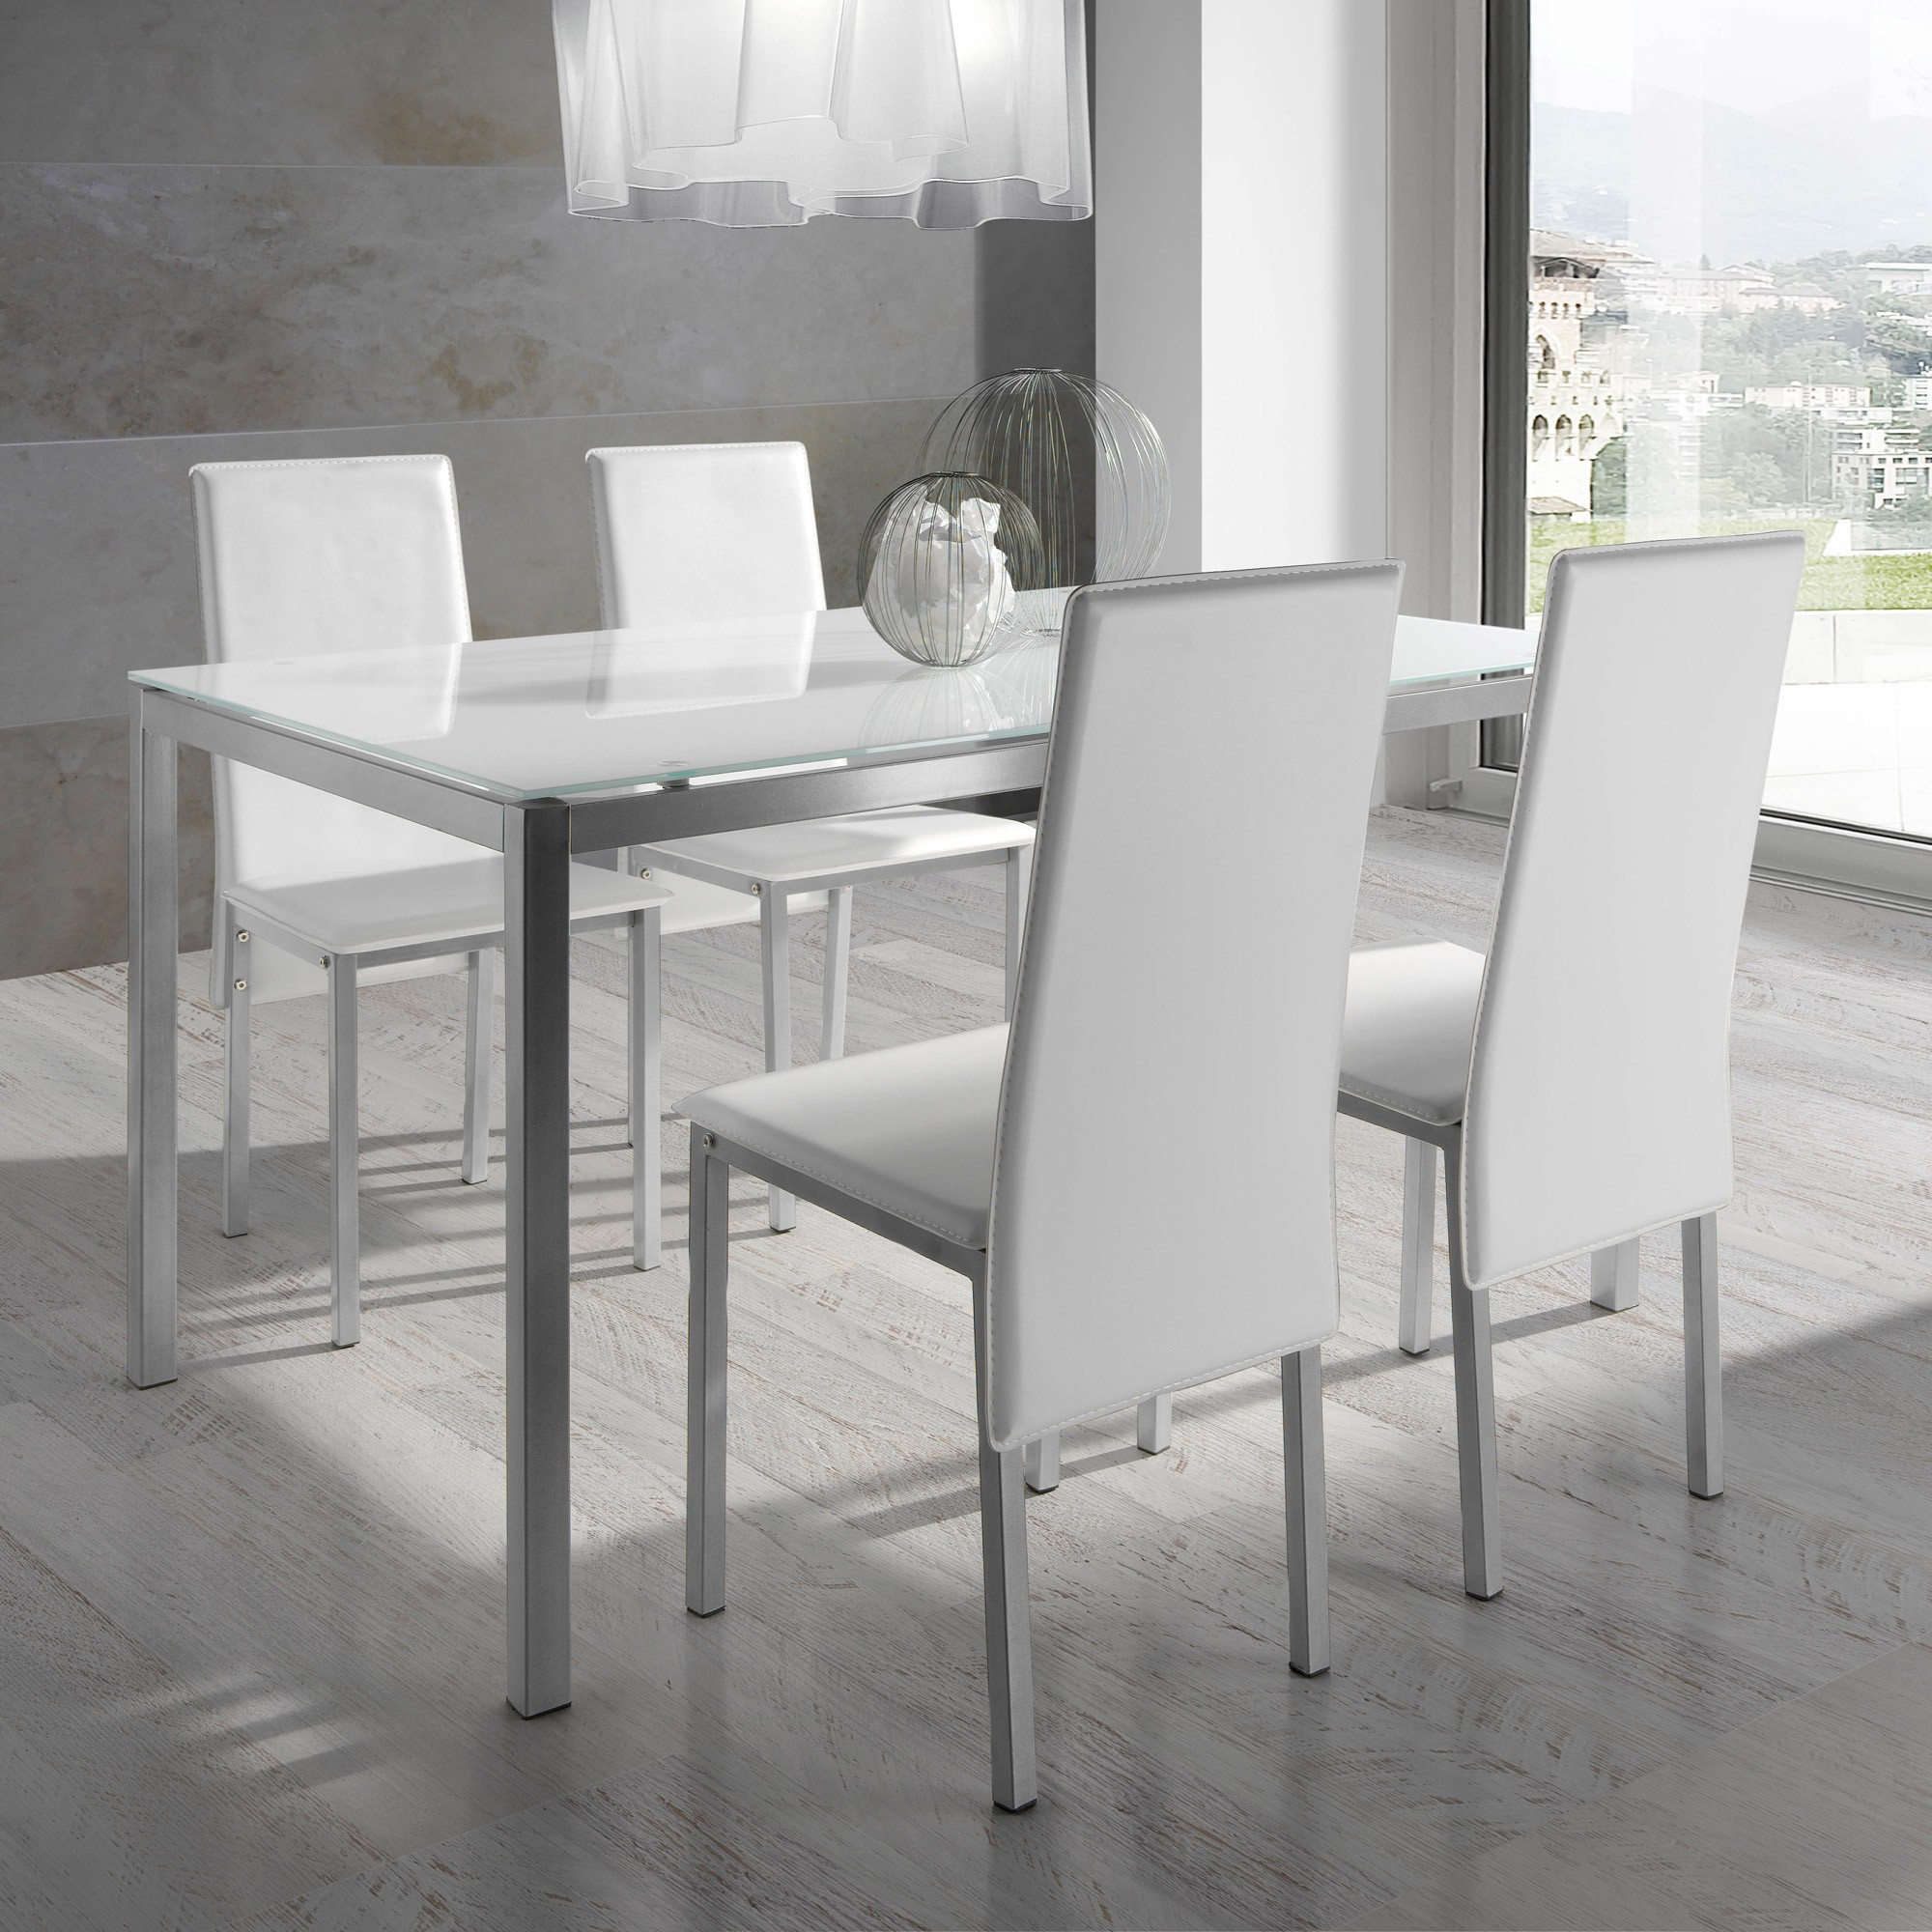 Ensemble table et chaise salle a manger but chaise for Ensemble table salle a manger chaises